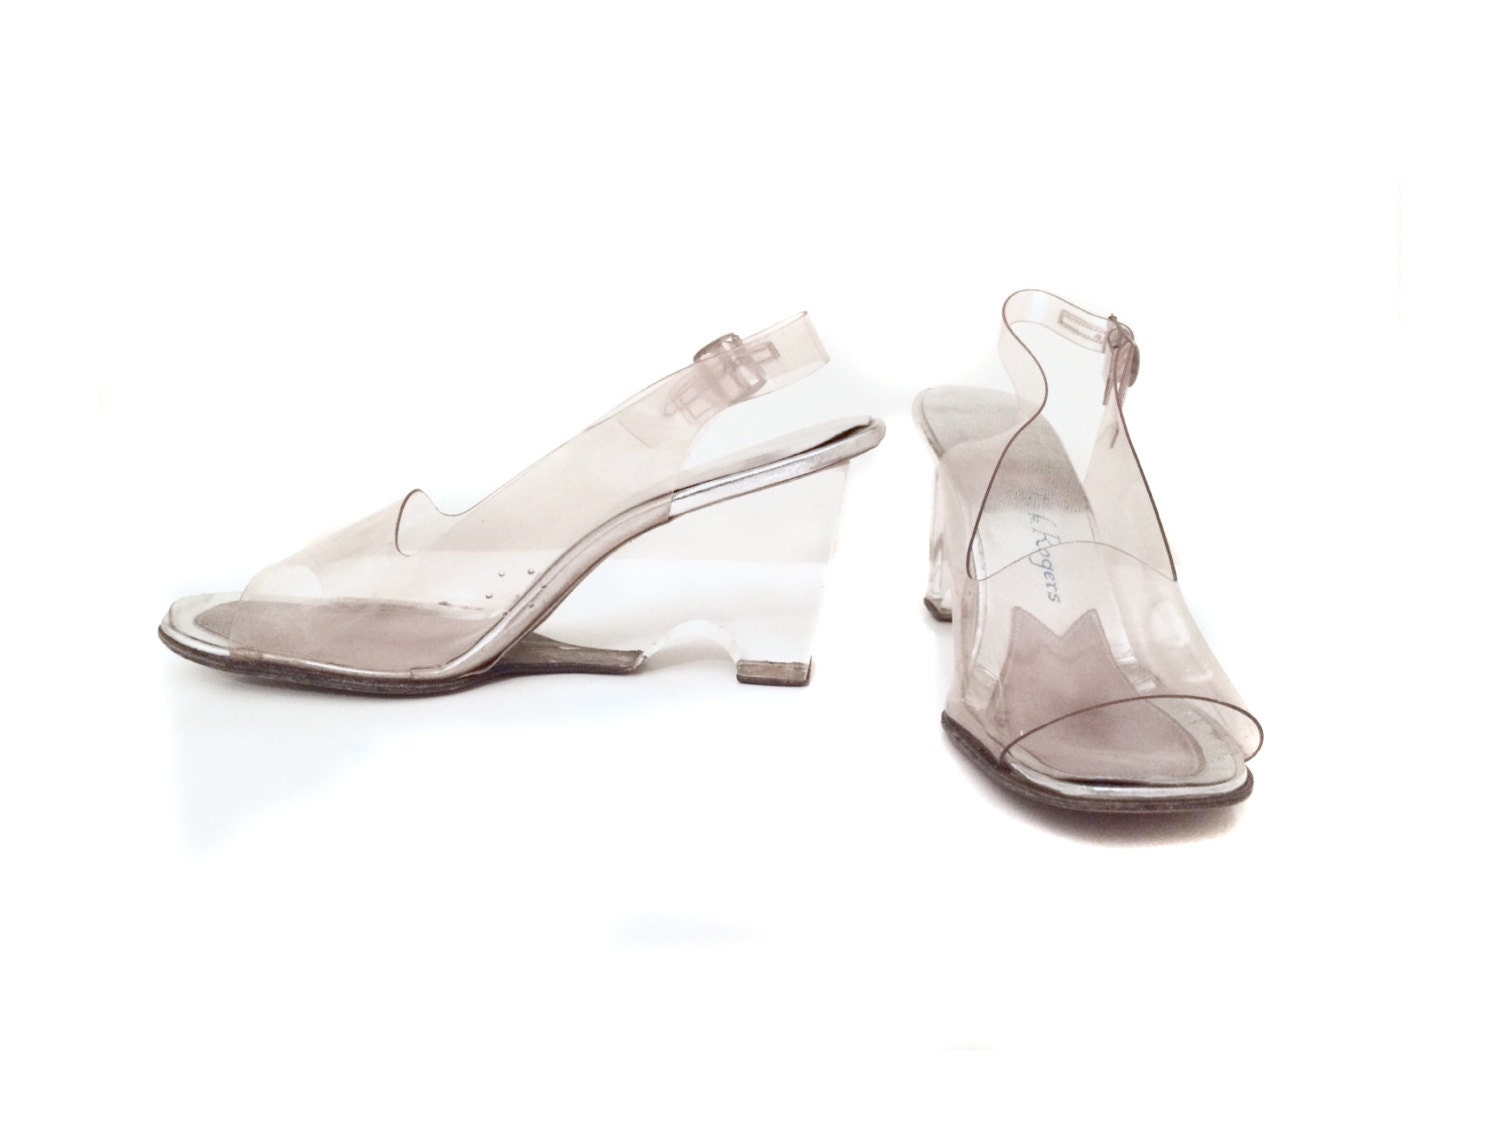 reserved for clear lucite wedge sandals with